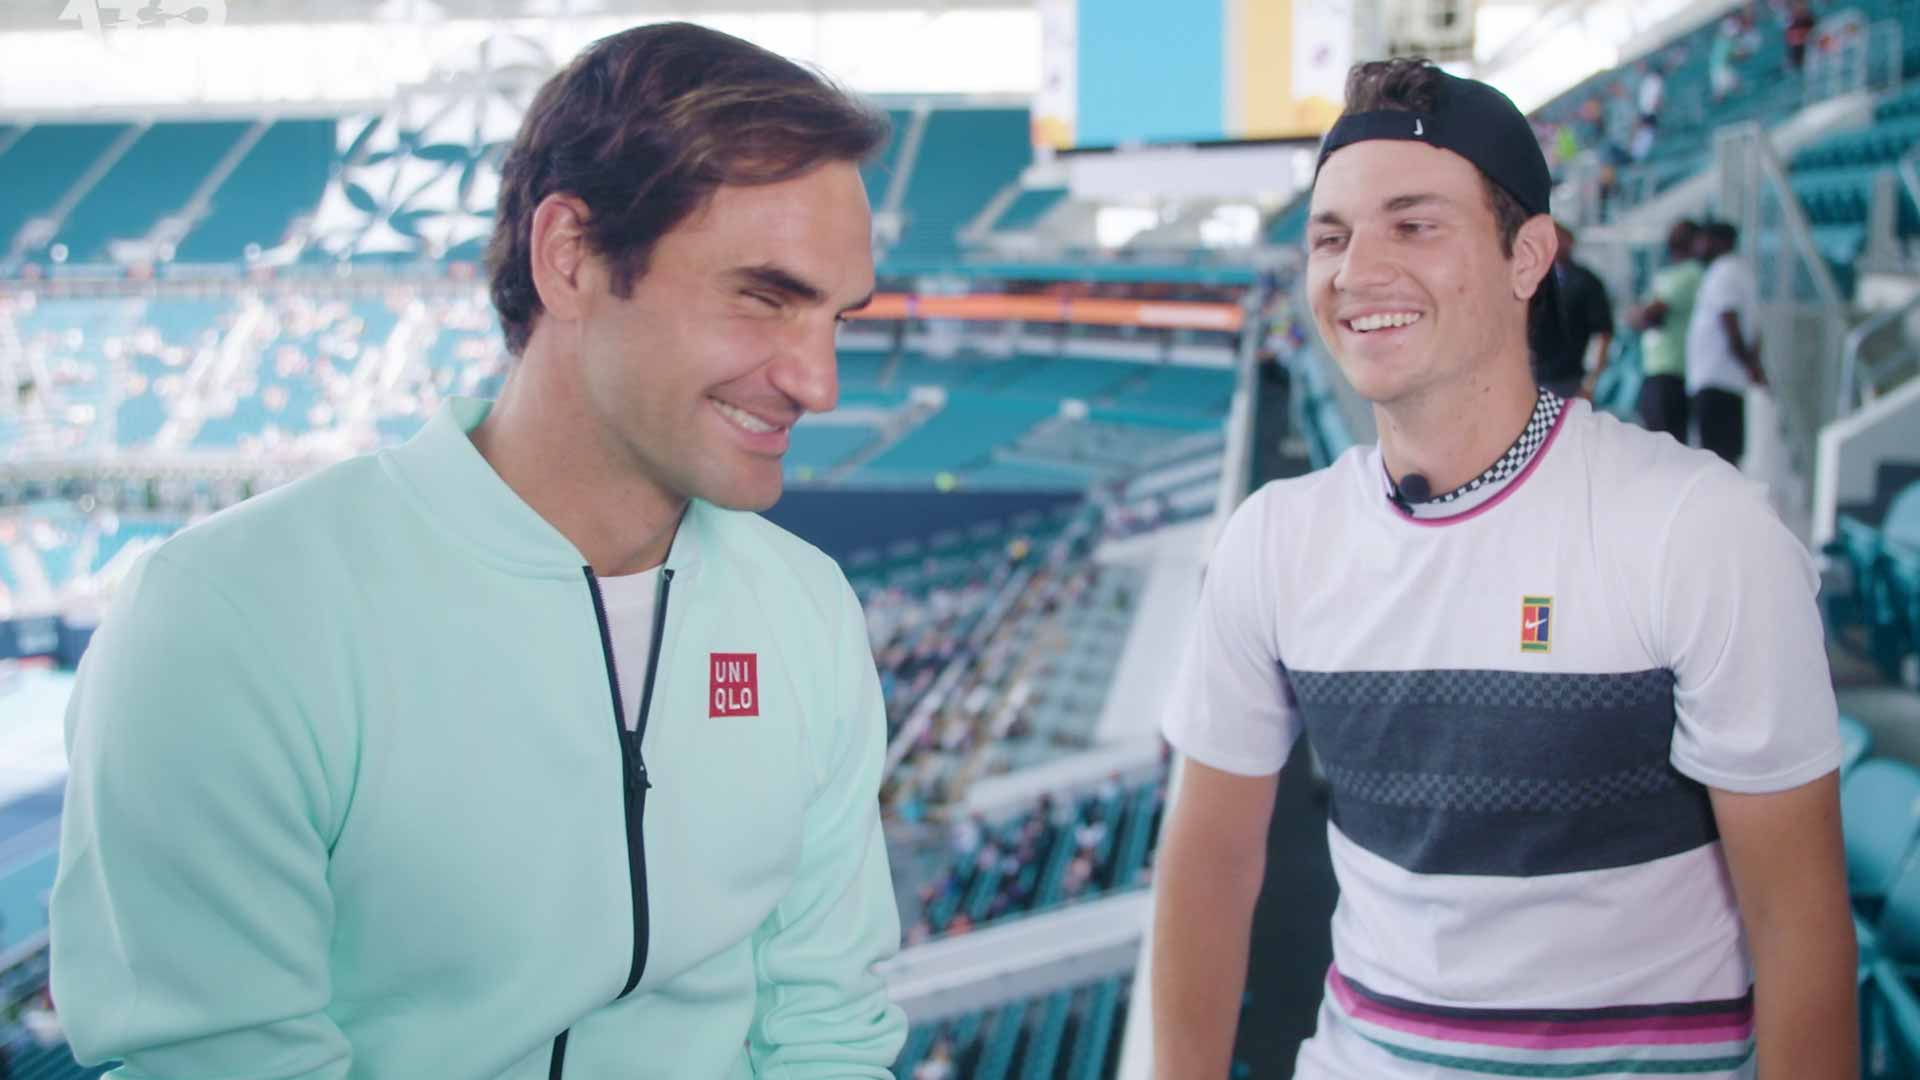 Roger Federer is interviewed by #NextGenATP reporter Miomir Kecmanovic at the Miami Open presented by Itau.